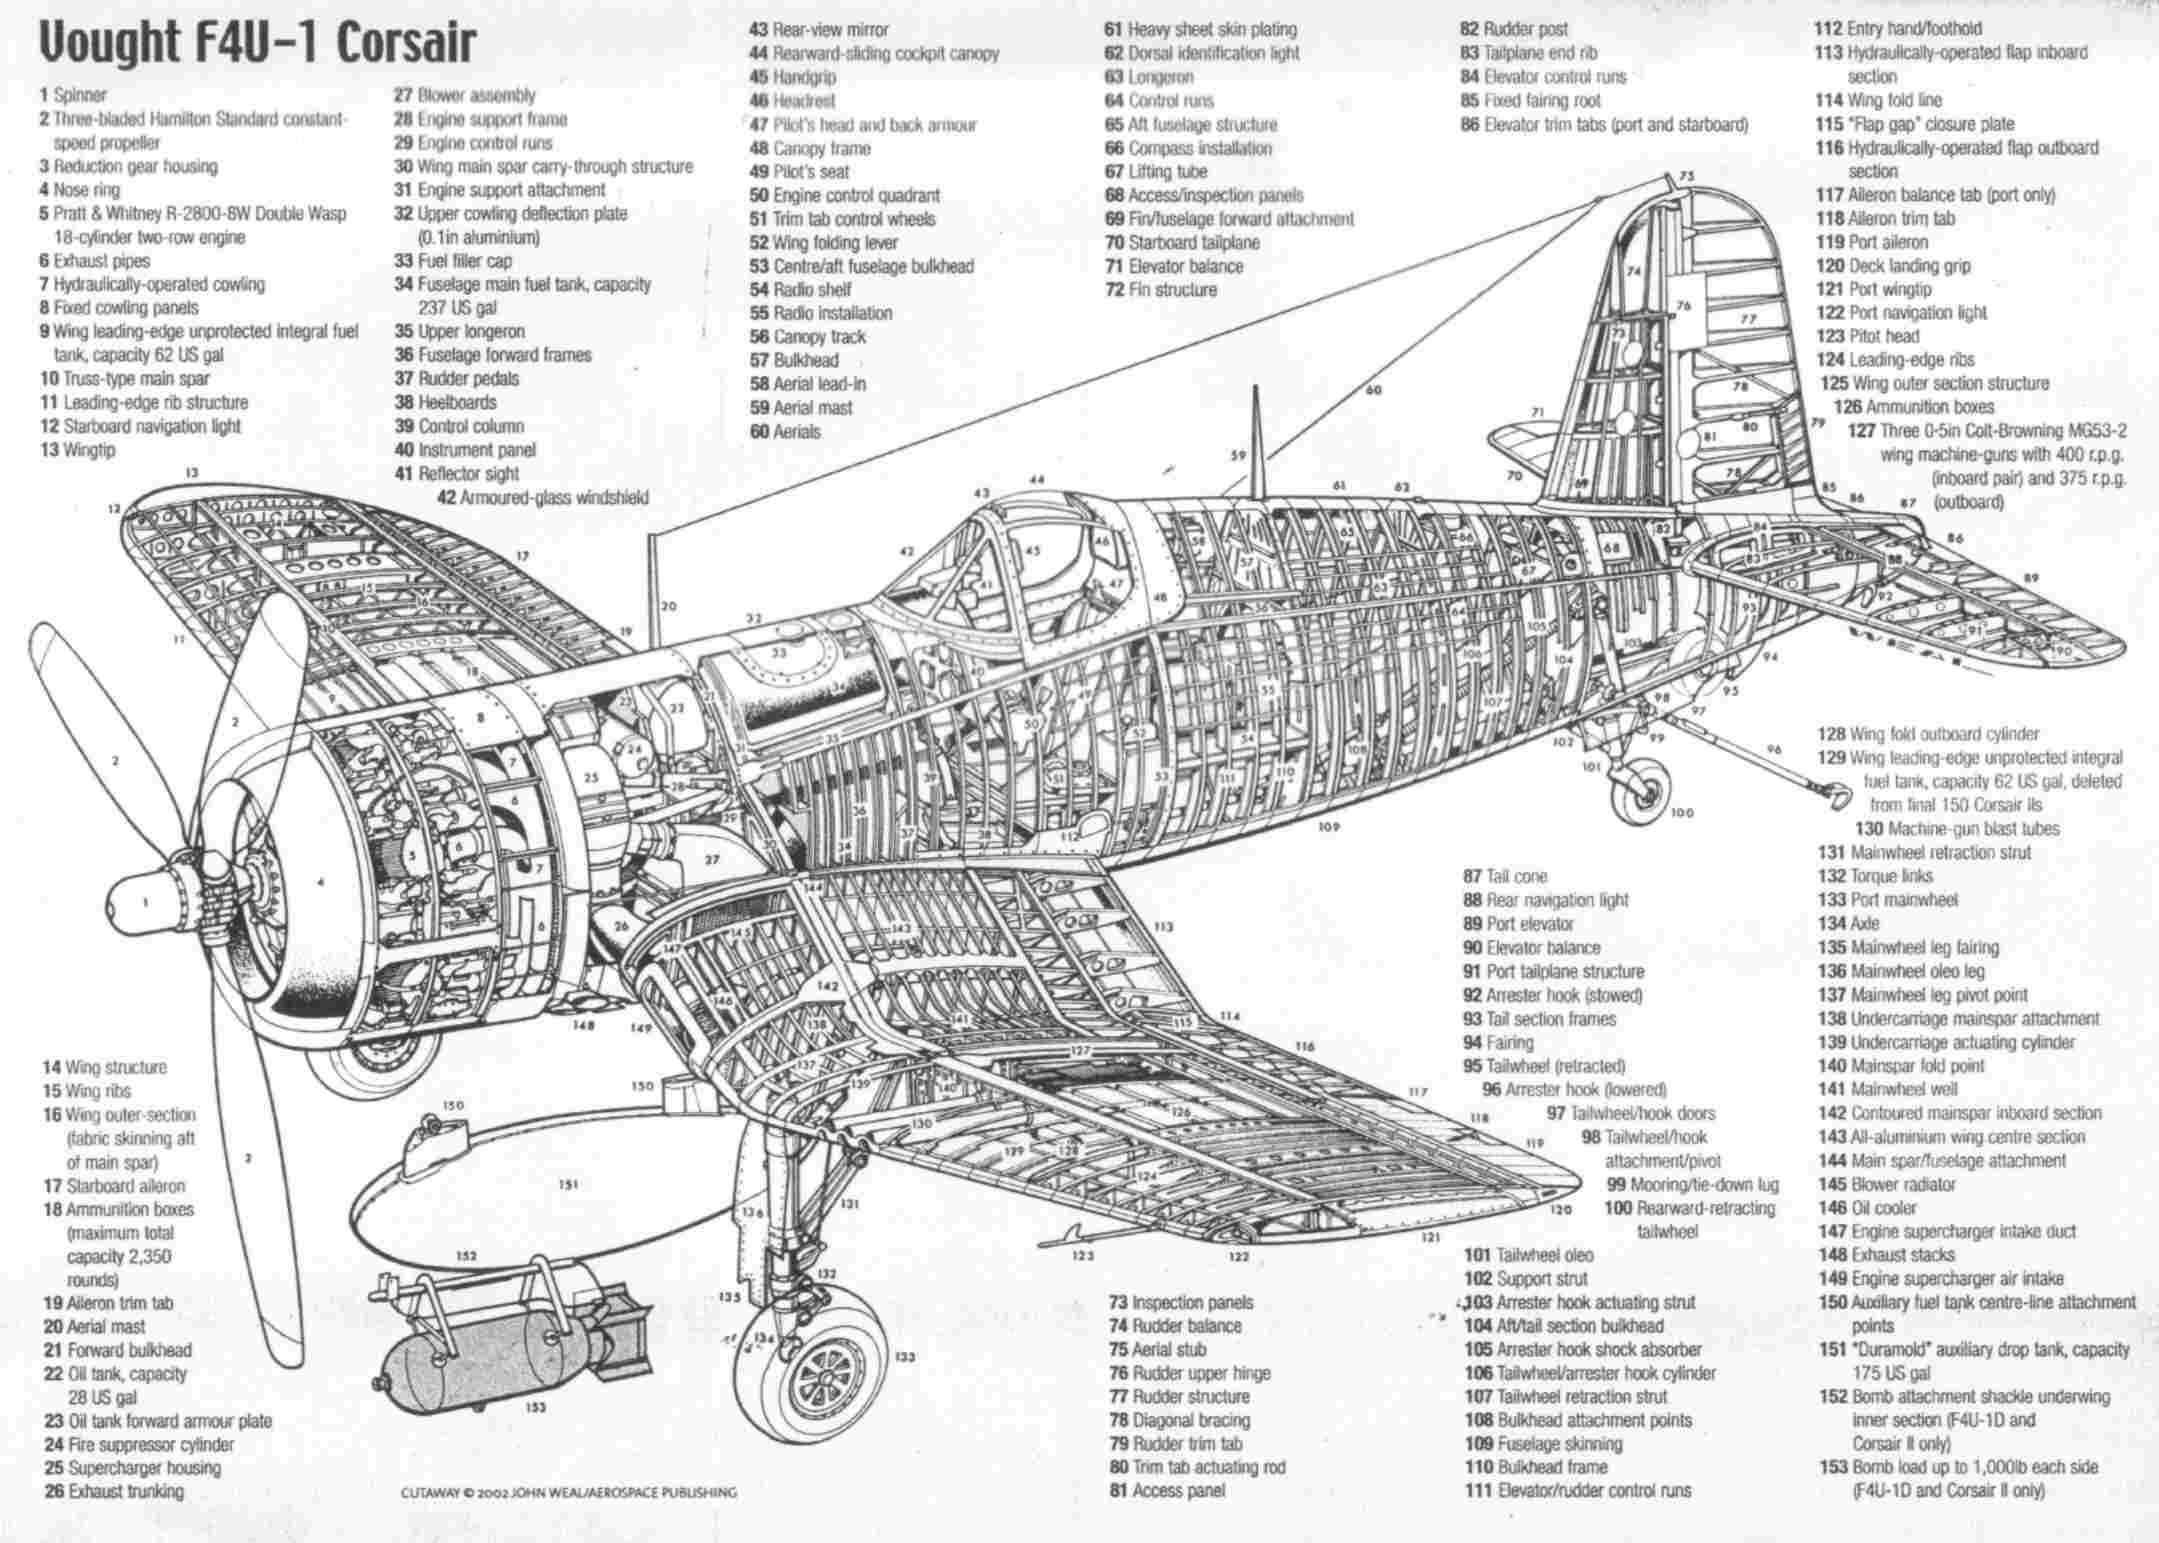 Plane Engine Diagram 1947 Bell X1 First Supersonic Cutaways Pinterest Of Plane Engine Diagram